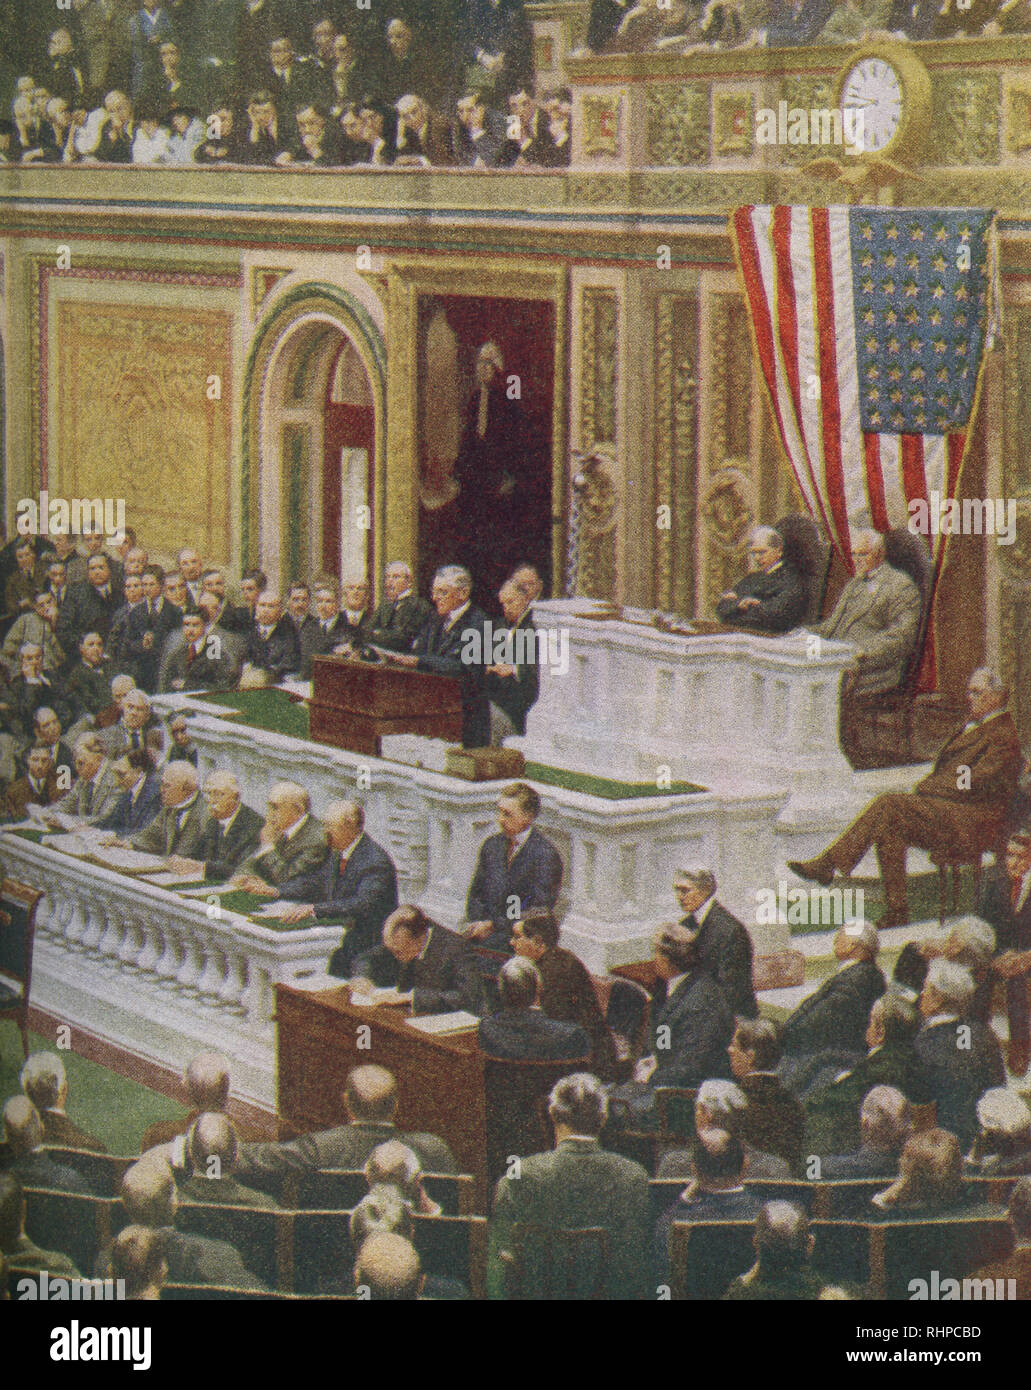 The caption reads: The President of the United States delivers his momentous message to Congress declaring that a State of War existed between the United States and Germany. President Woodrow Wilson asked Congress to declare war on Germany on April 2, 1917. Stock Photo